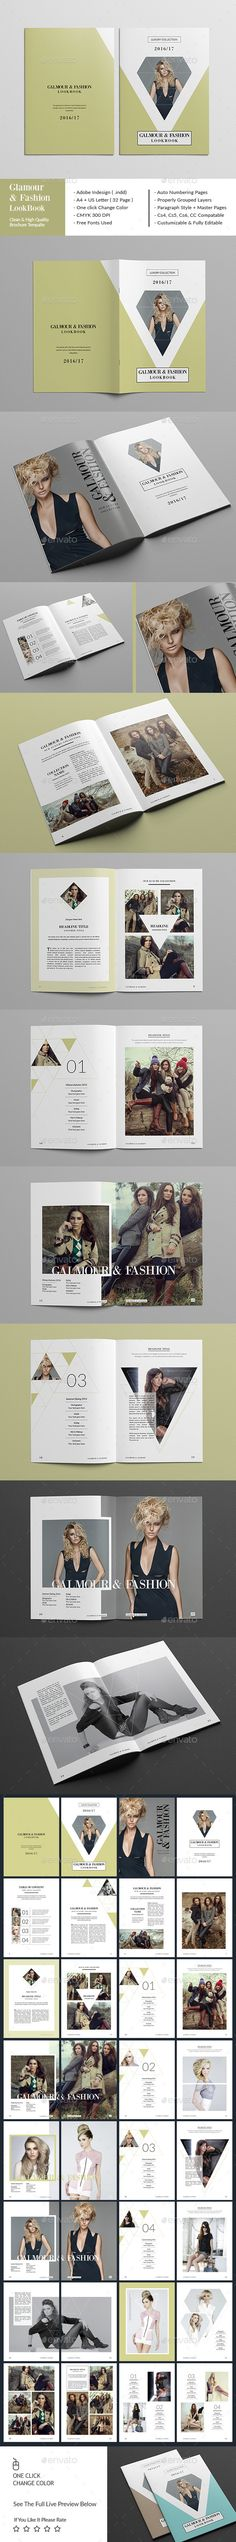 Glamour & Fashion Look Book 32 Pages Template InDesign INDD #design Download: http://graphicriver.net/item/glamour-fashion-look-book-32-page/14445241?ref=ksioks